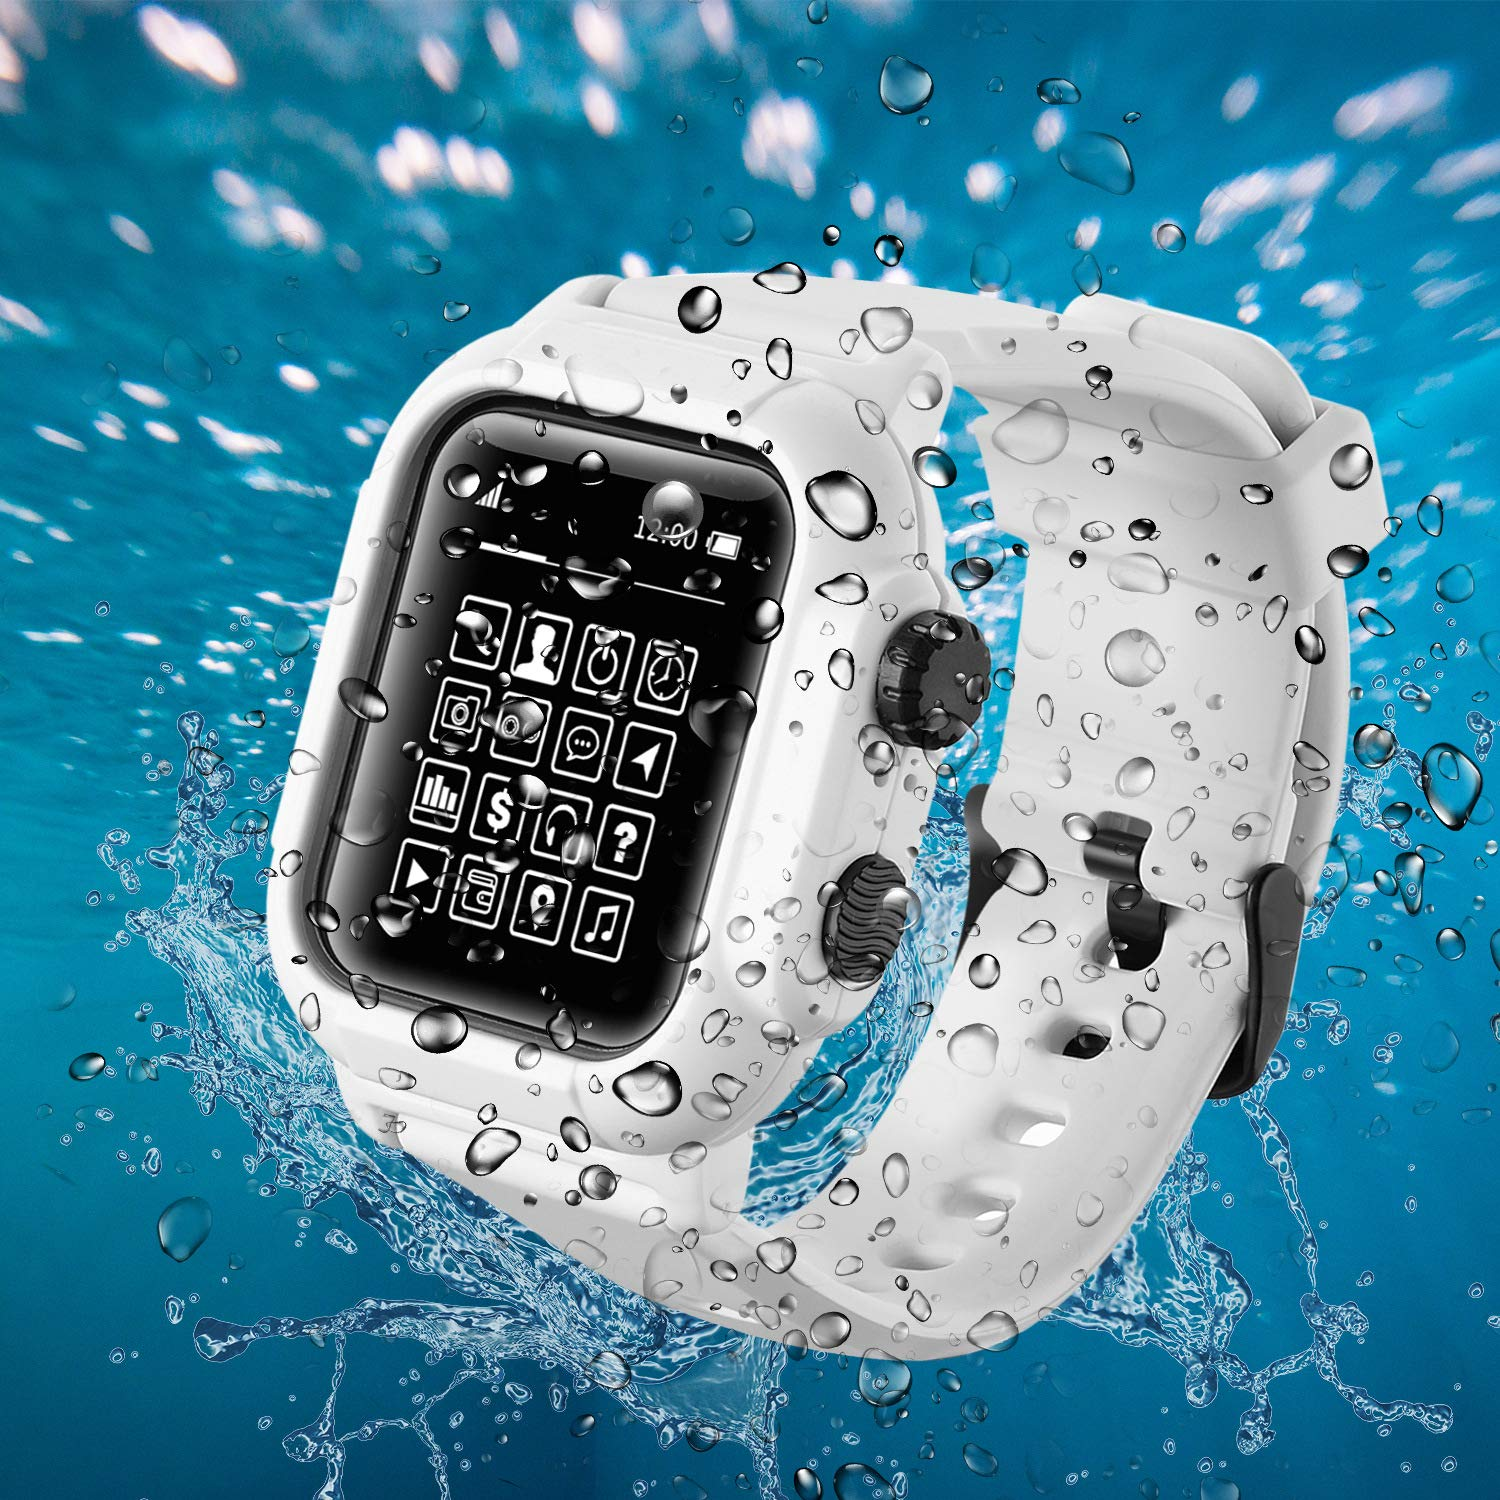 Compatible Apple Watch iwatch 44mm Waterproof Case, Tomcrazy IP68 Full Sealed Shockproof Cover with Soft Silicone Sport iwatch Band Watchstrap Protective Case for Apple Watch Series 4 44mm (White) by Tomcrazy